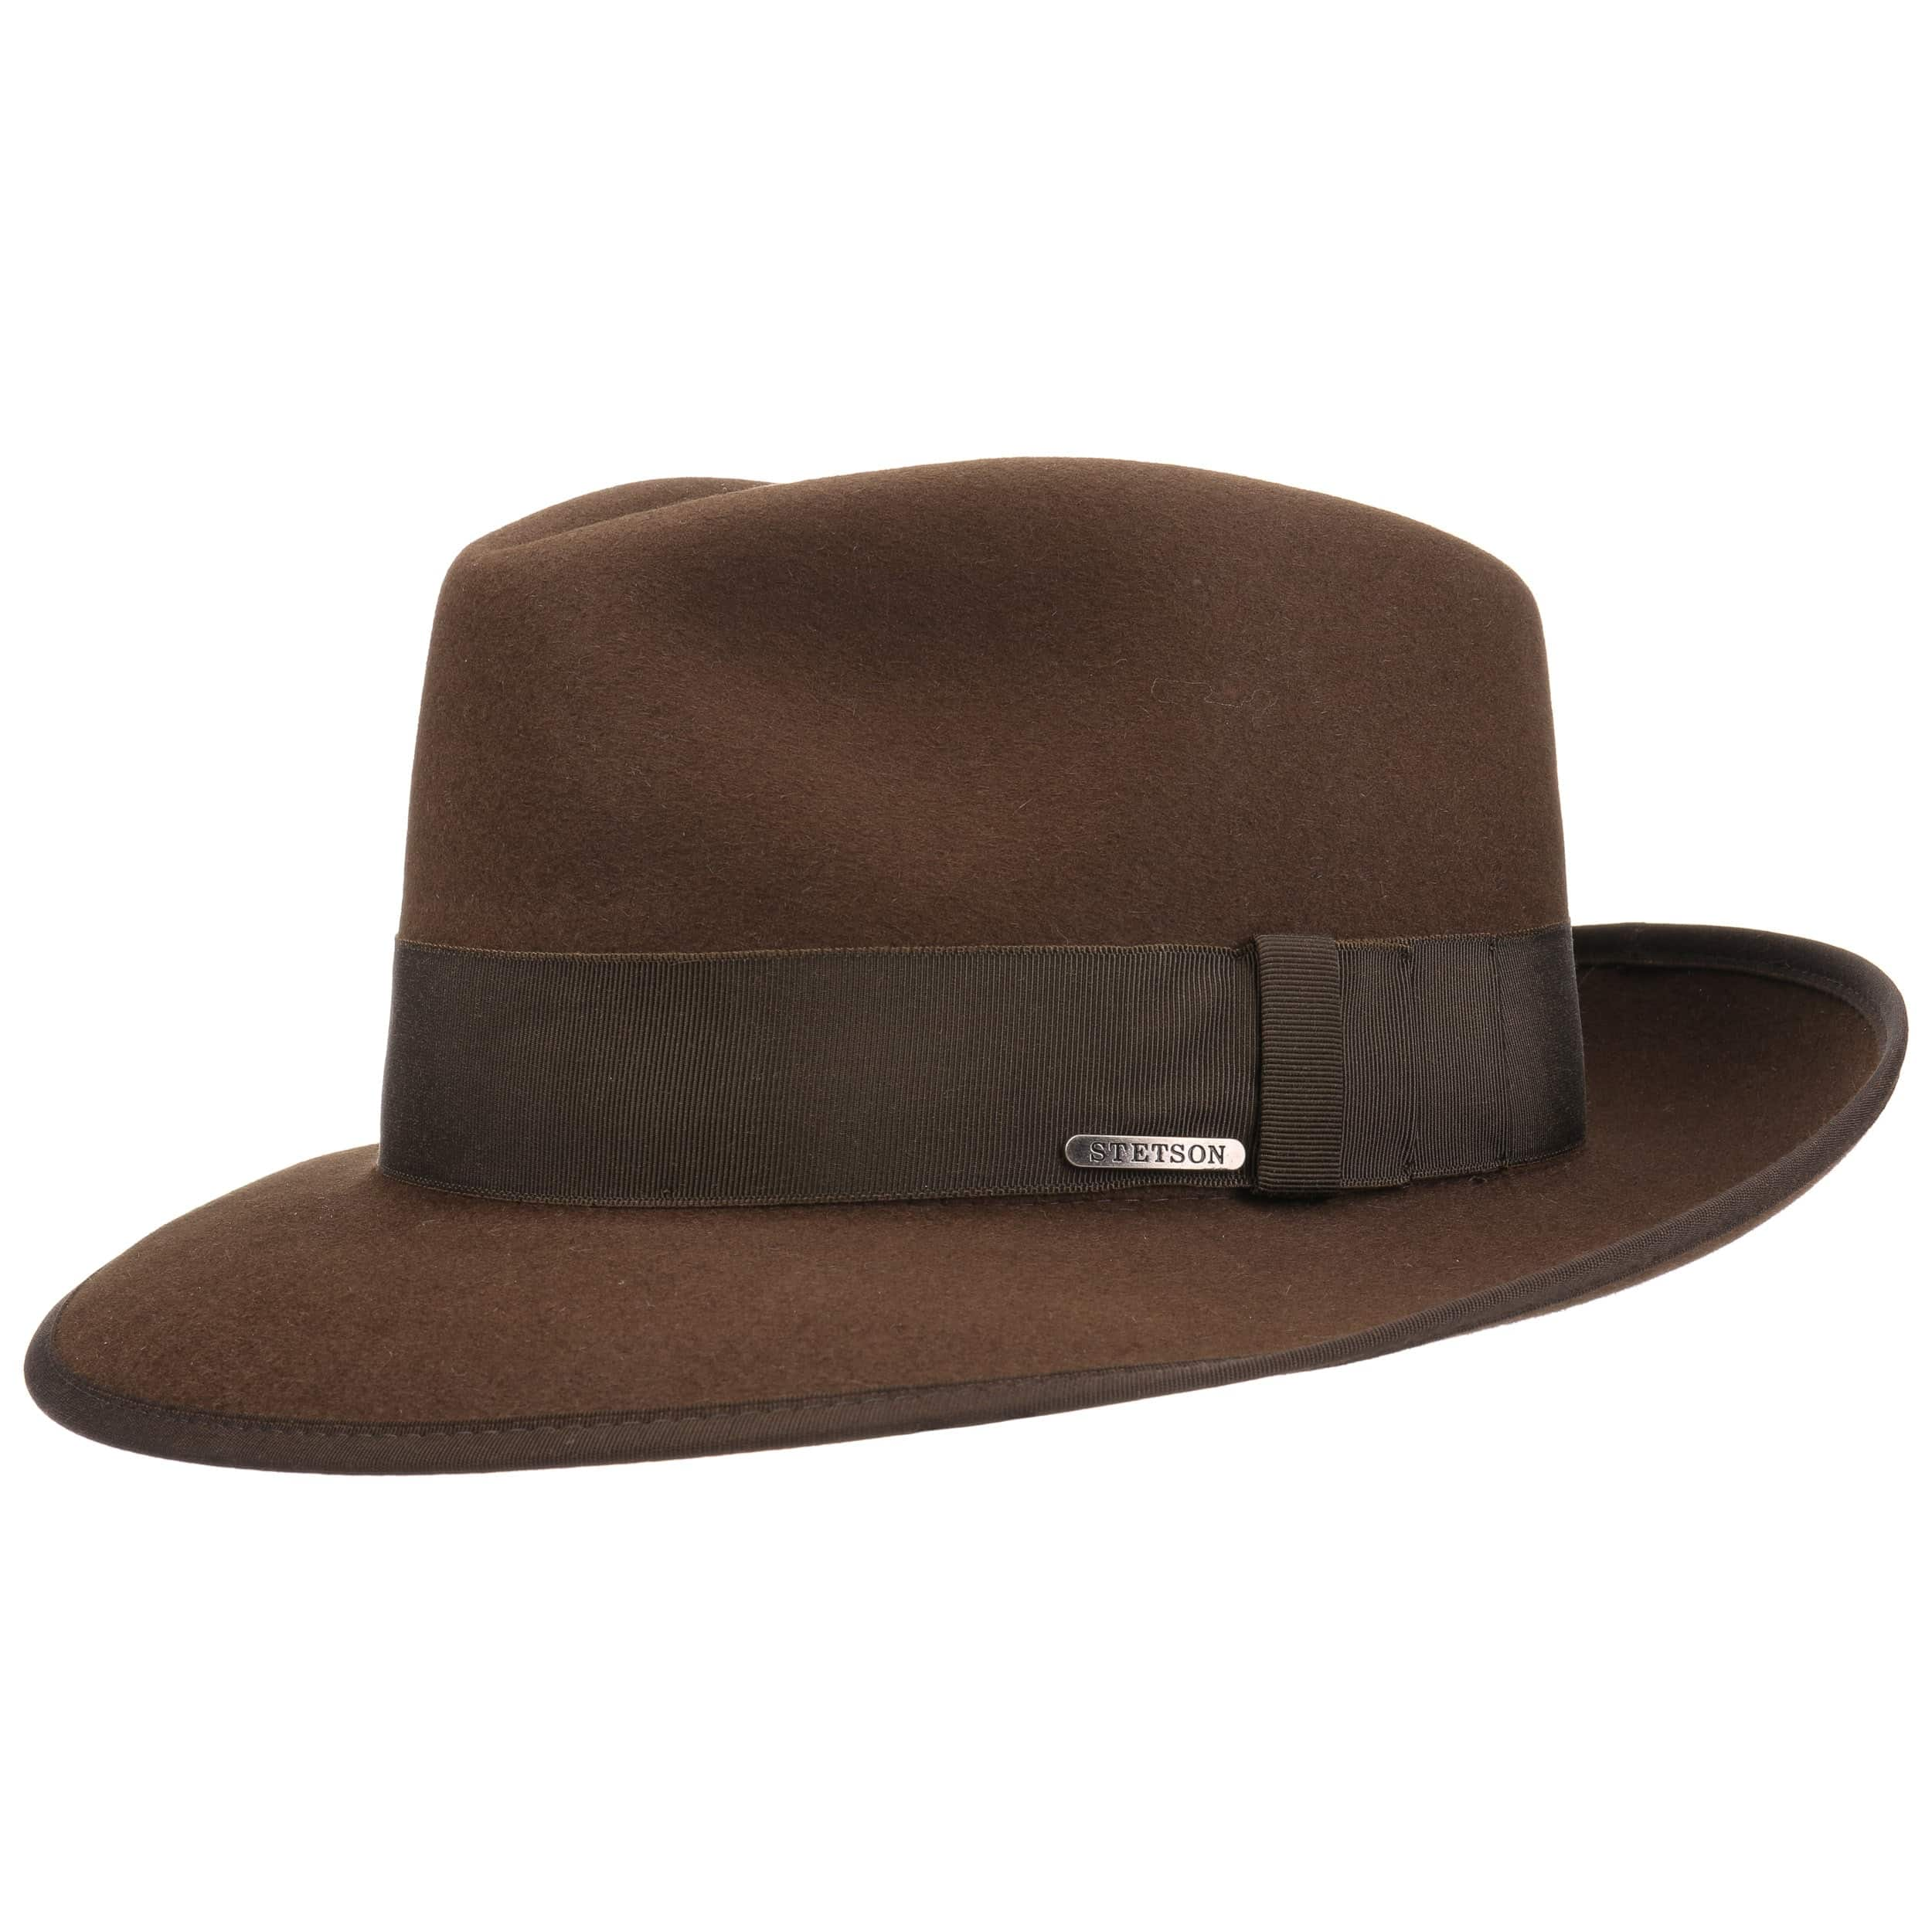 ... Classic Fur Felt Fedora Hat by Stetson - brown 7 62b75a29ea1